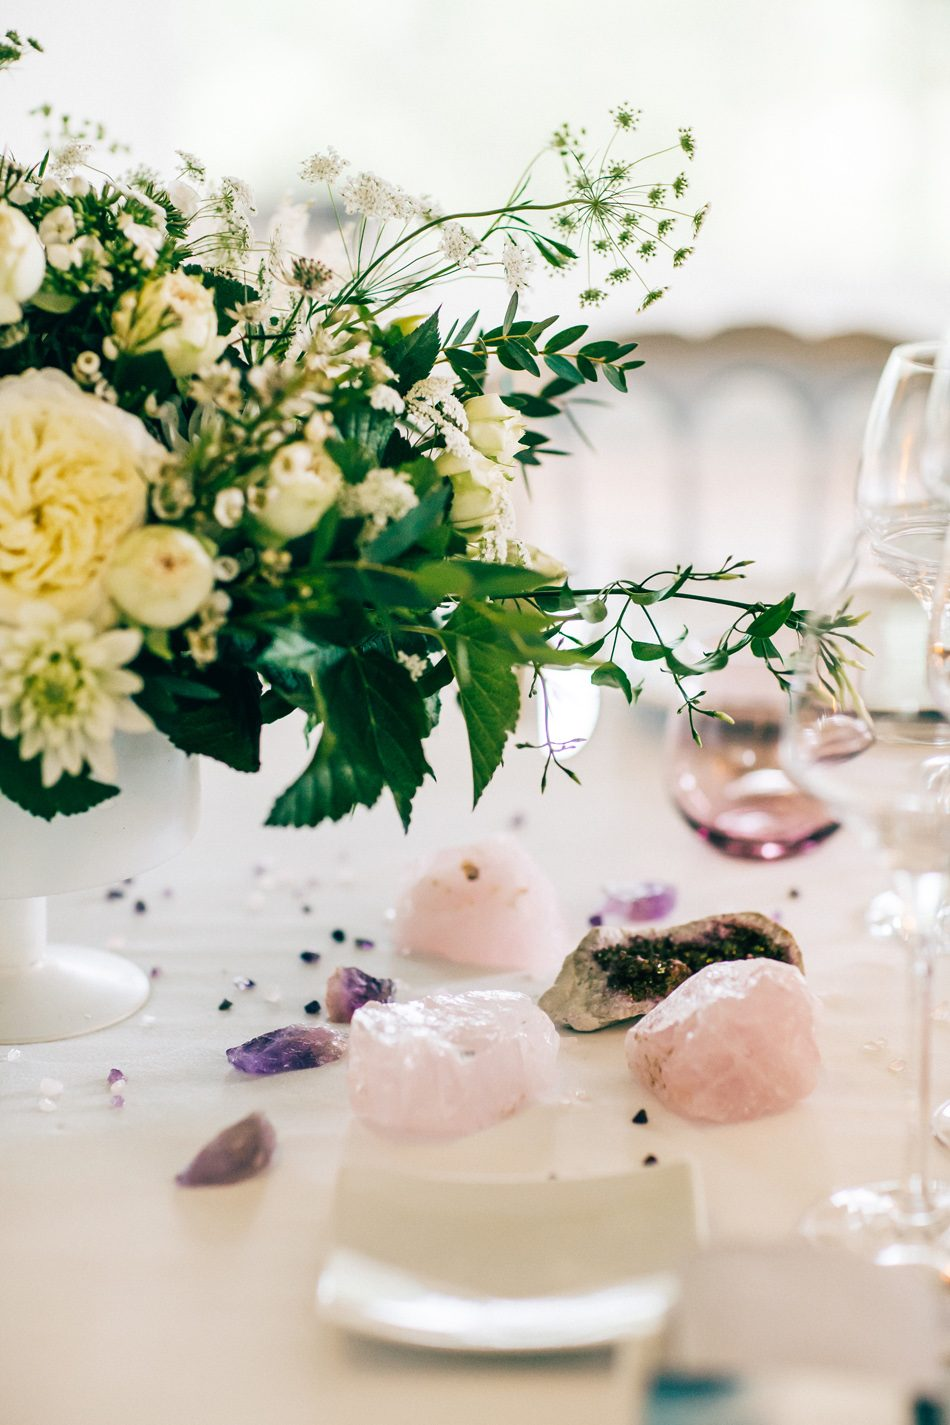 ruban collectif photographe landes france pays basque papeterie mariage fleuriste aquitaine wedding photography white flowers decoration mariage precious stones